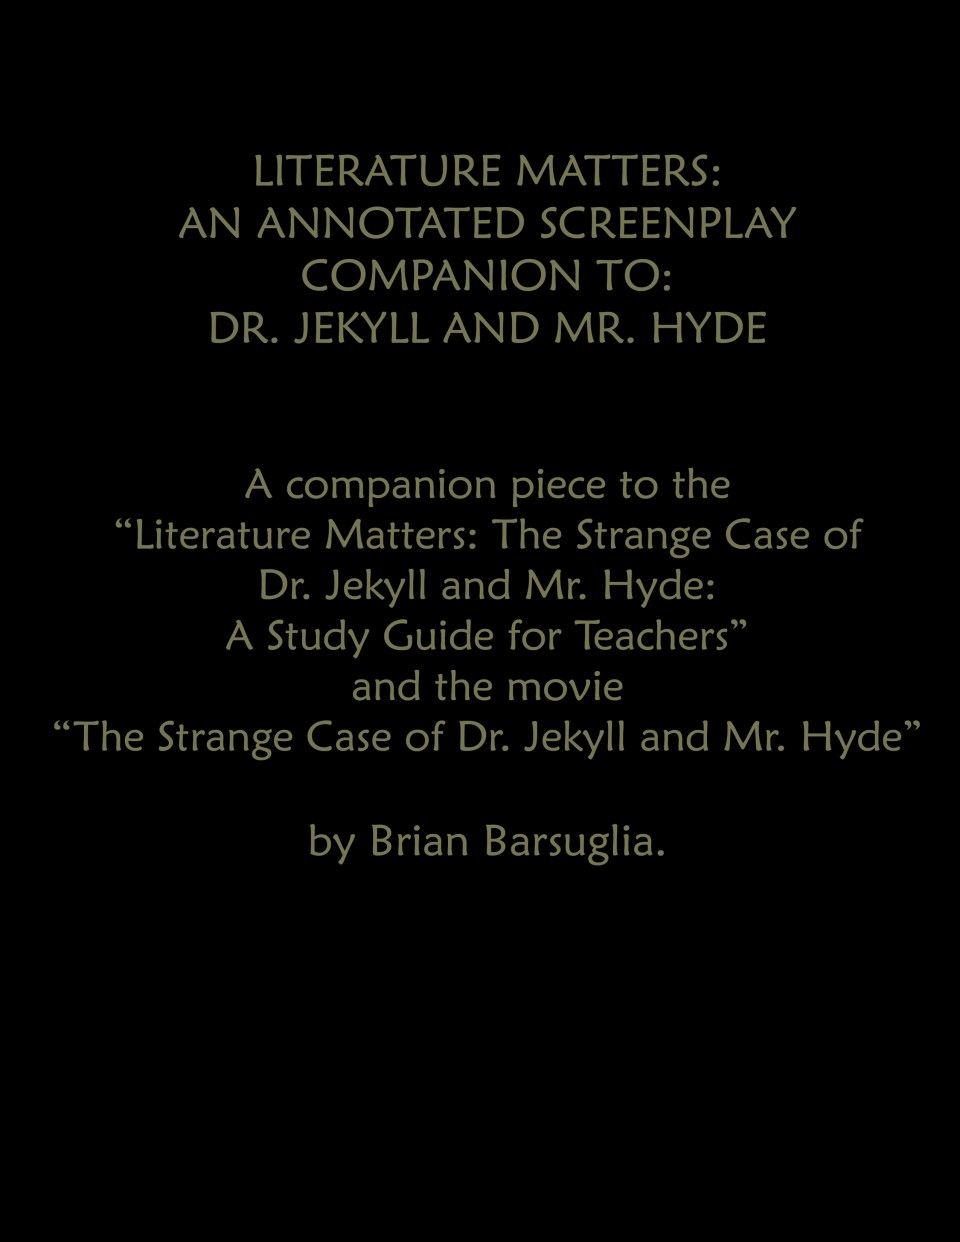 Dr. Jekyll and Mr. Hyde Annotated Screenplay